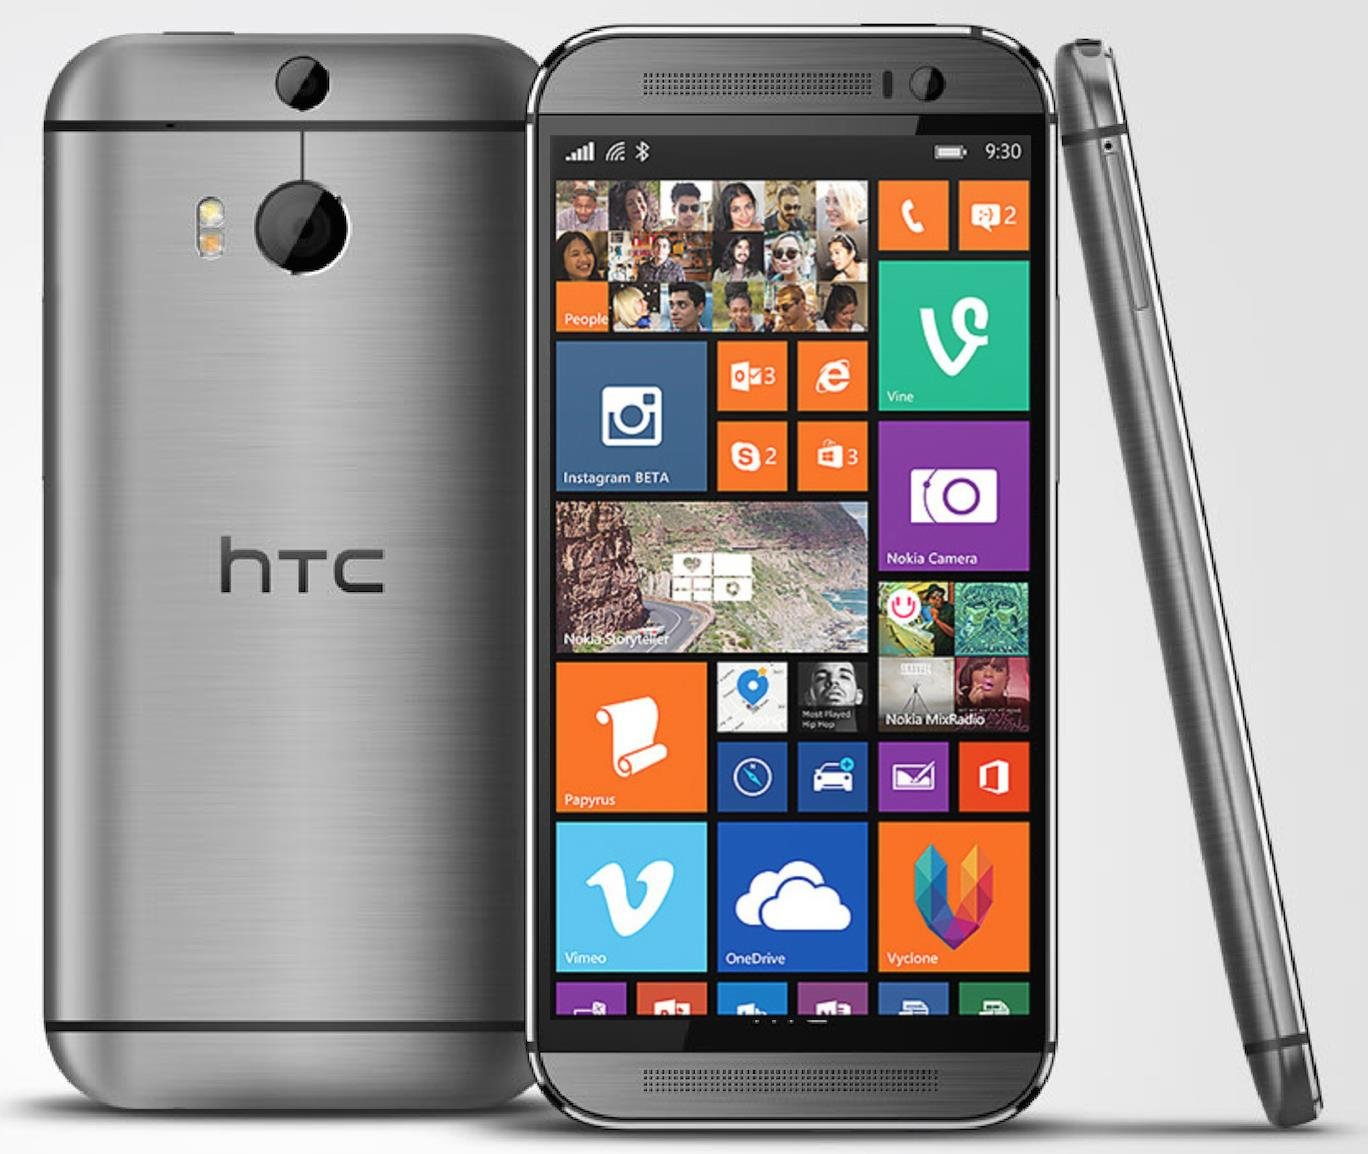 Htc One m8 Windows Phone t Mobile Htc One m8 For Windows